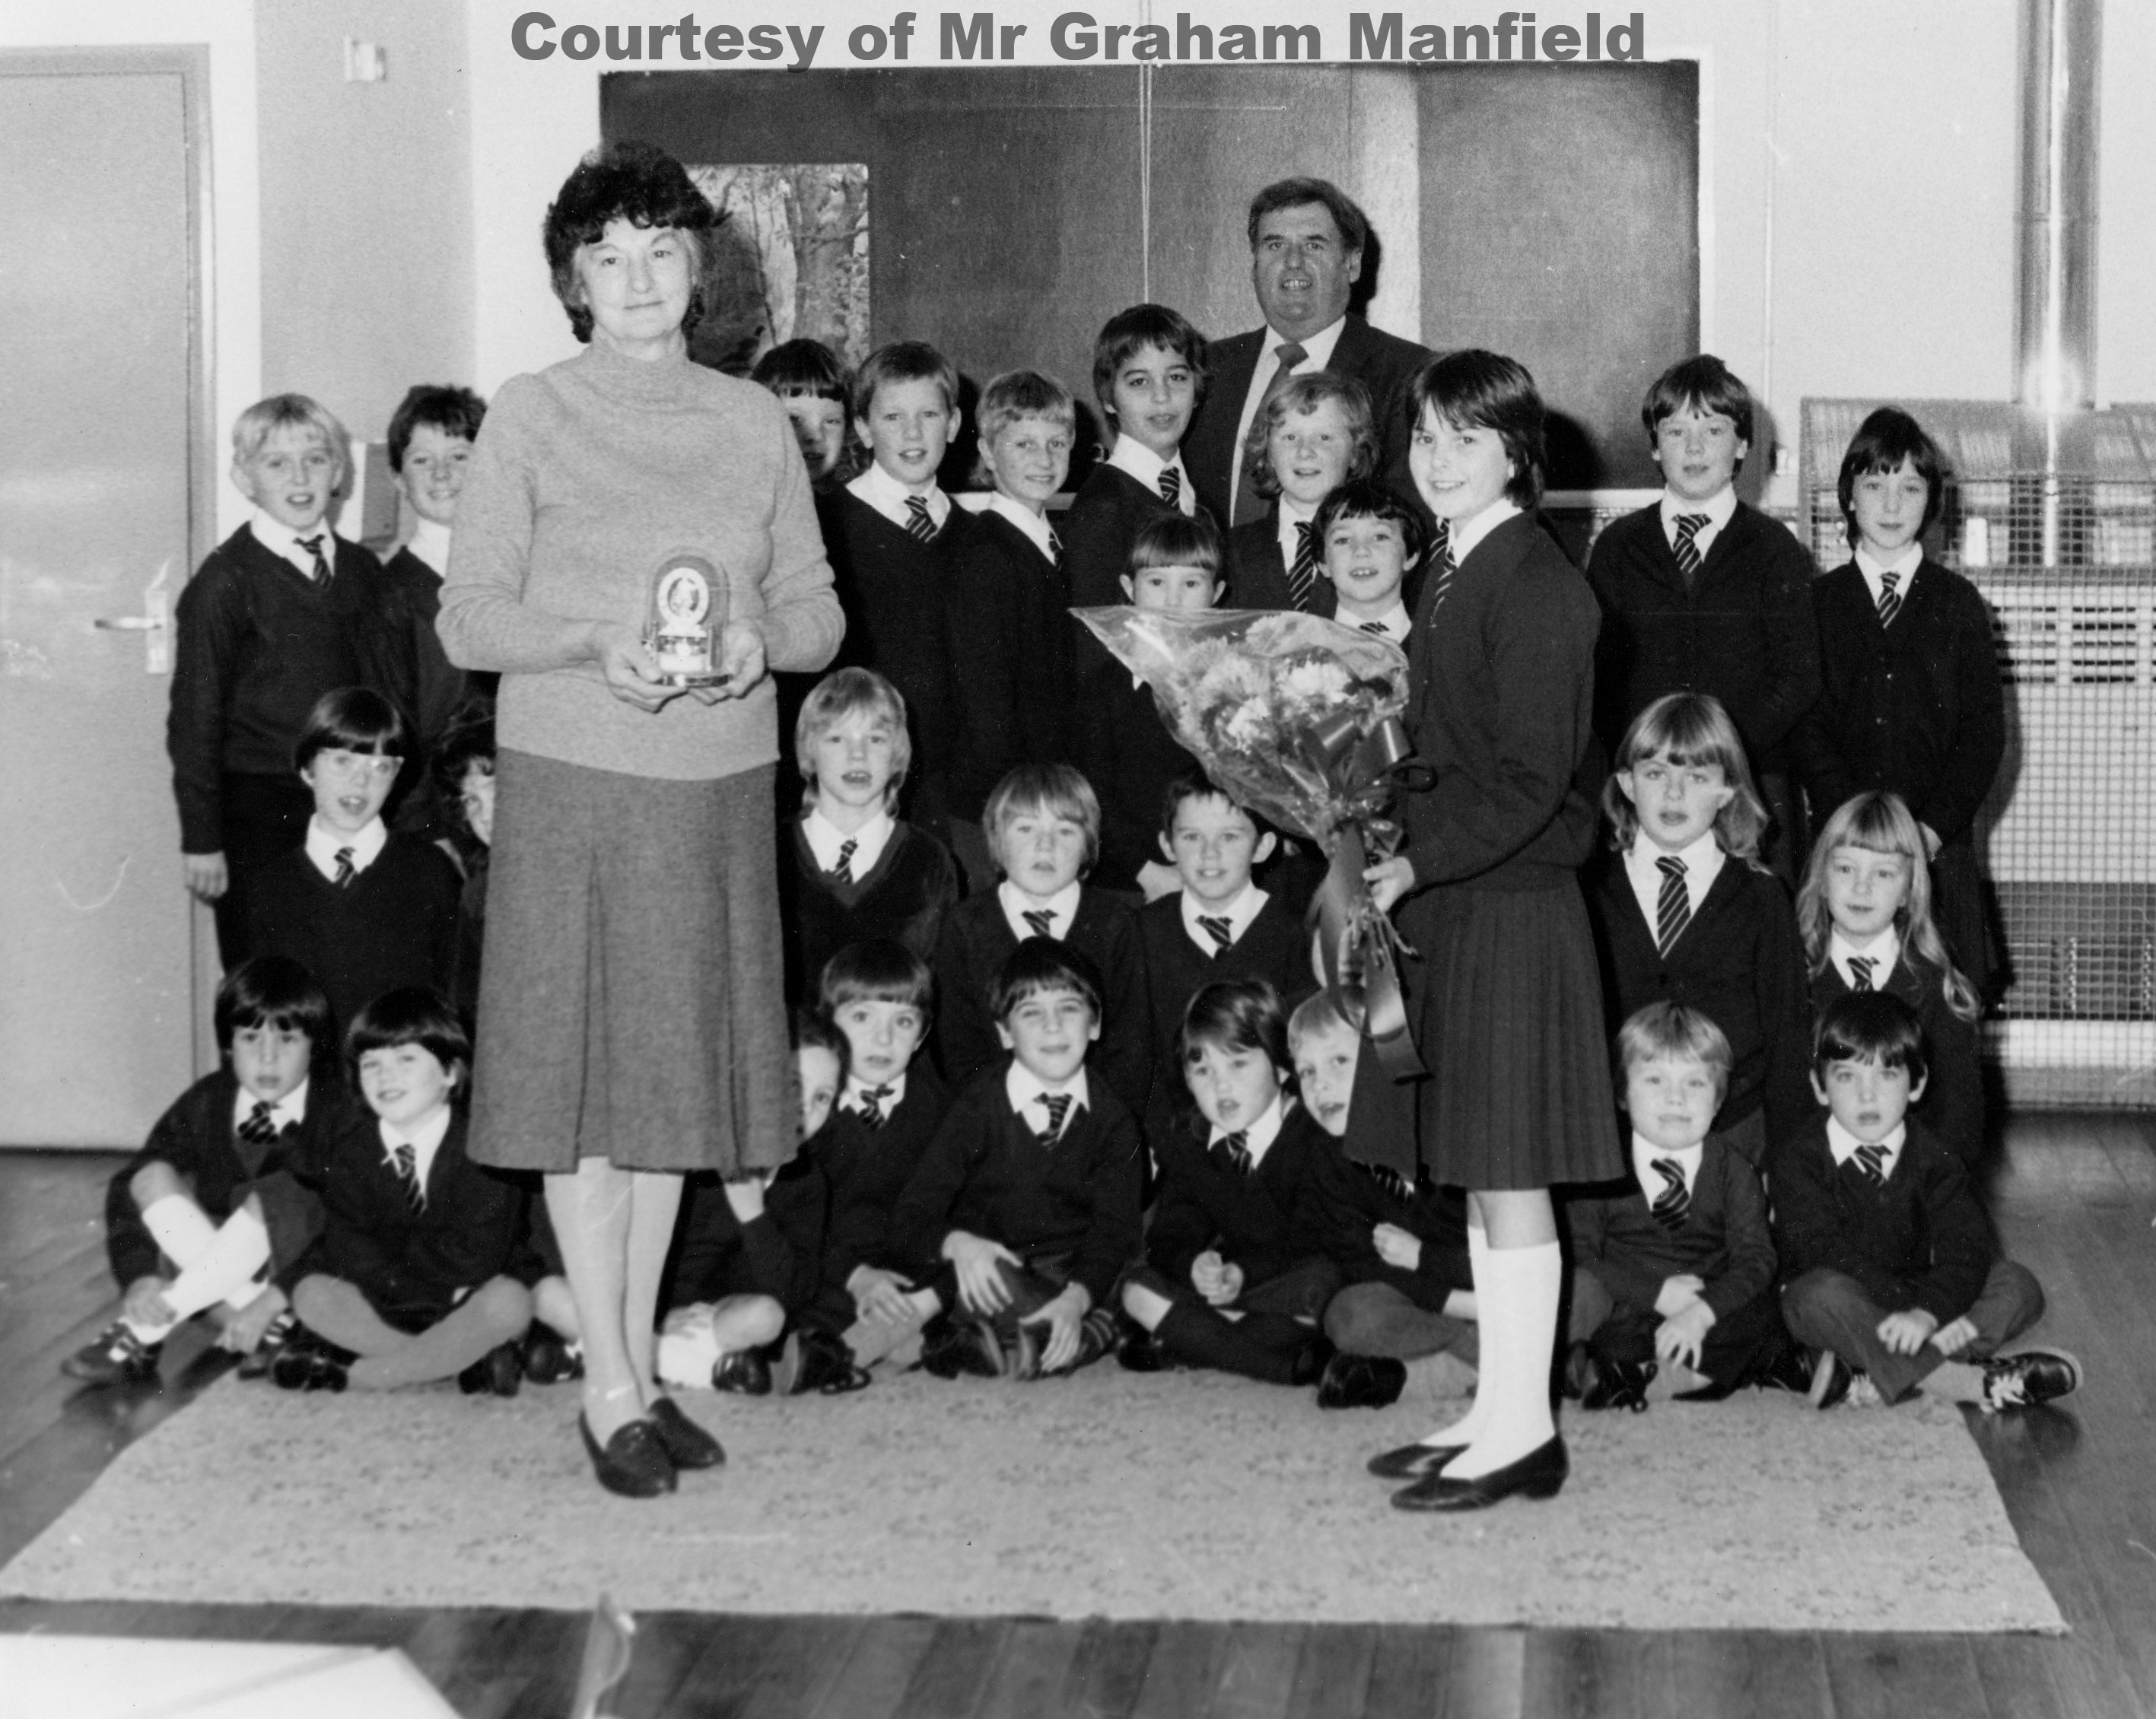 Mrs Margaret Manfield Caretaker at Goonhavern School retires in Nov 1983 after 14 years.